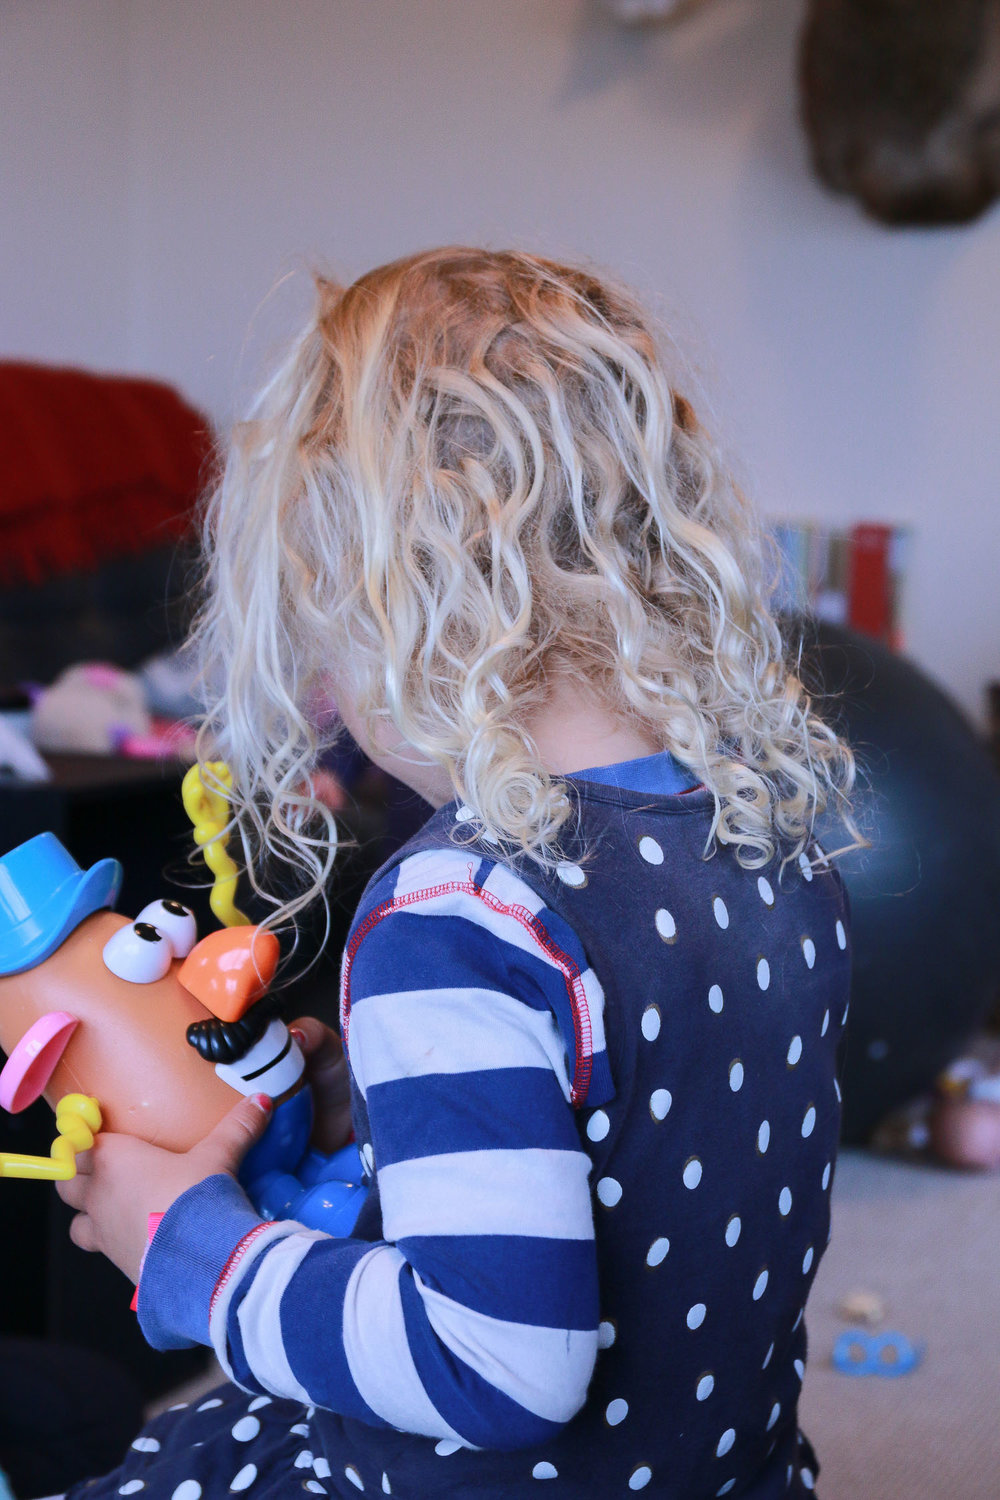 little-girl-playing-in-lounge-with-mr-potato-head-curly-blonde-hair